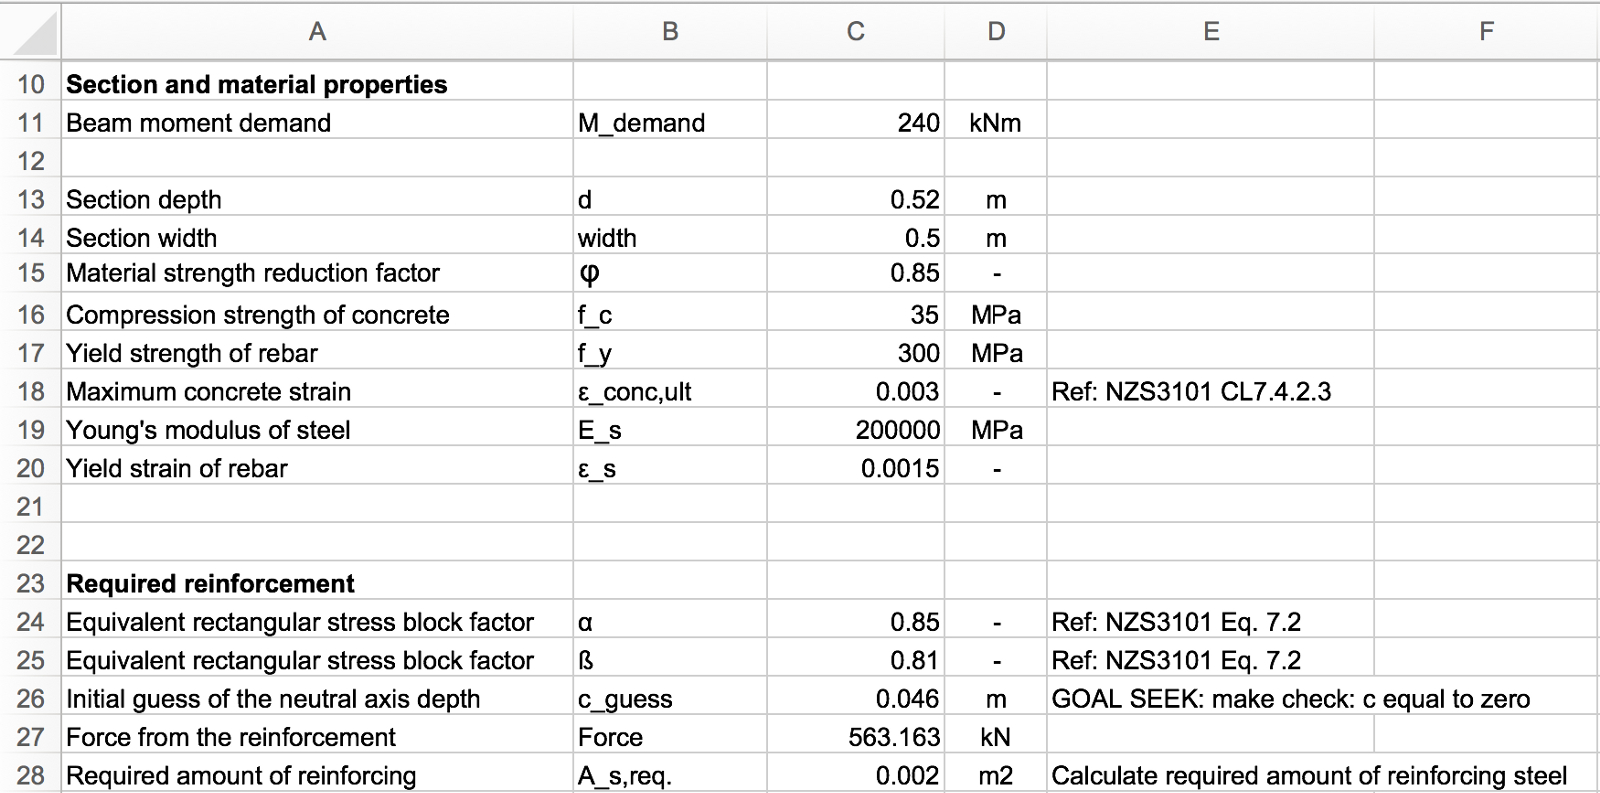 Structural Engineering Spreadsheets In The Do's And Don'ts Of Engineering Spreadsheets – Maxim Millen – Medium